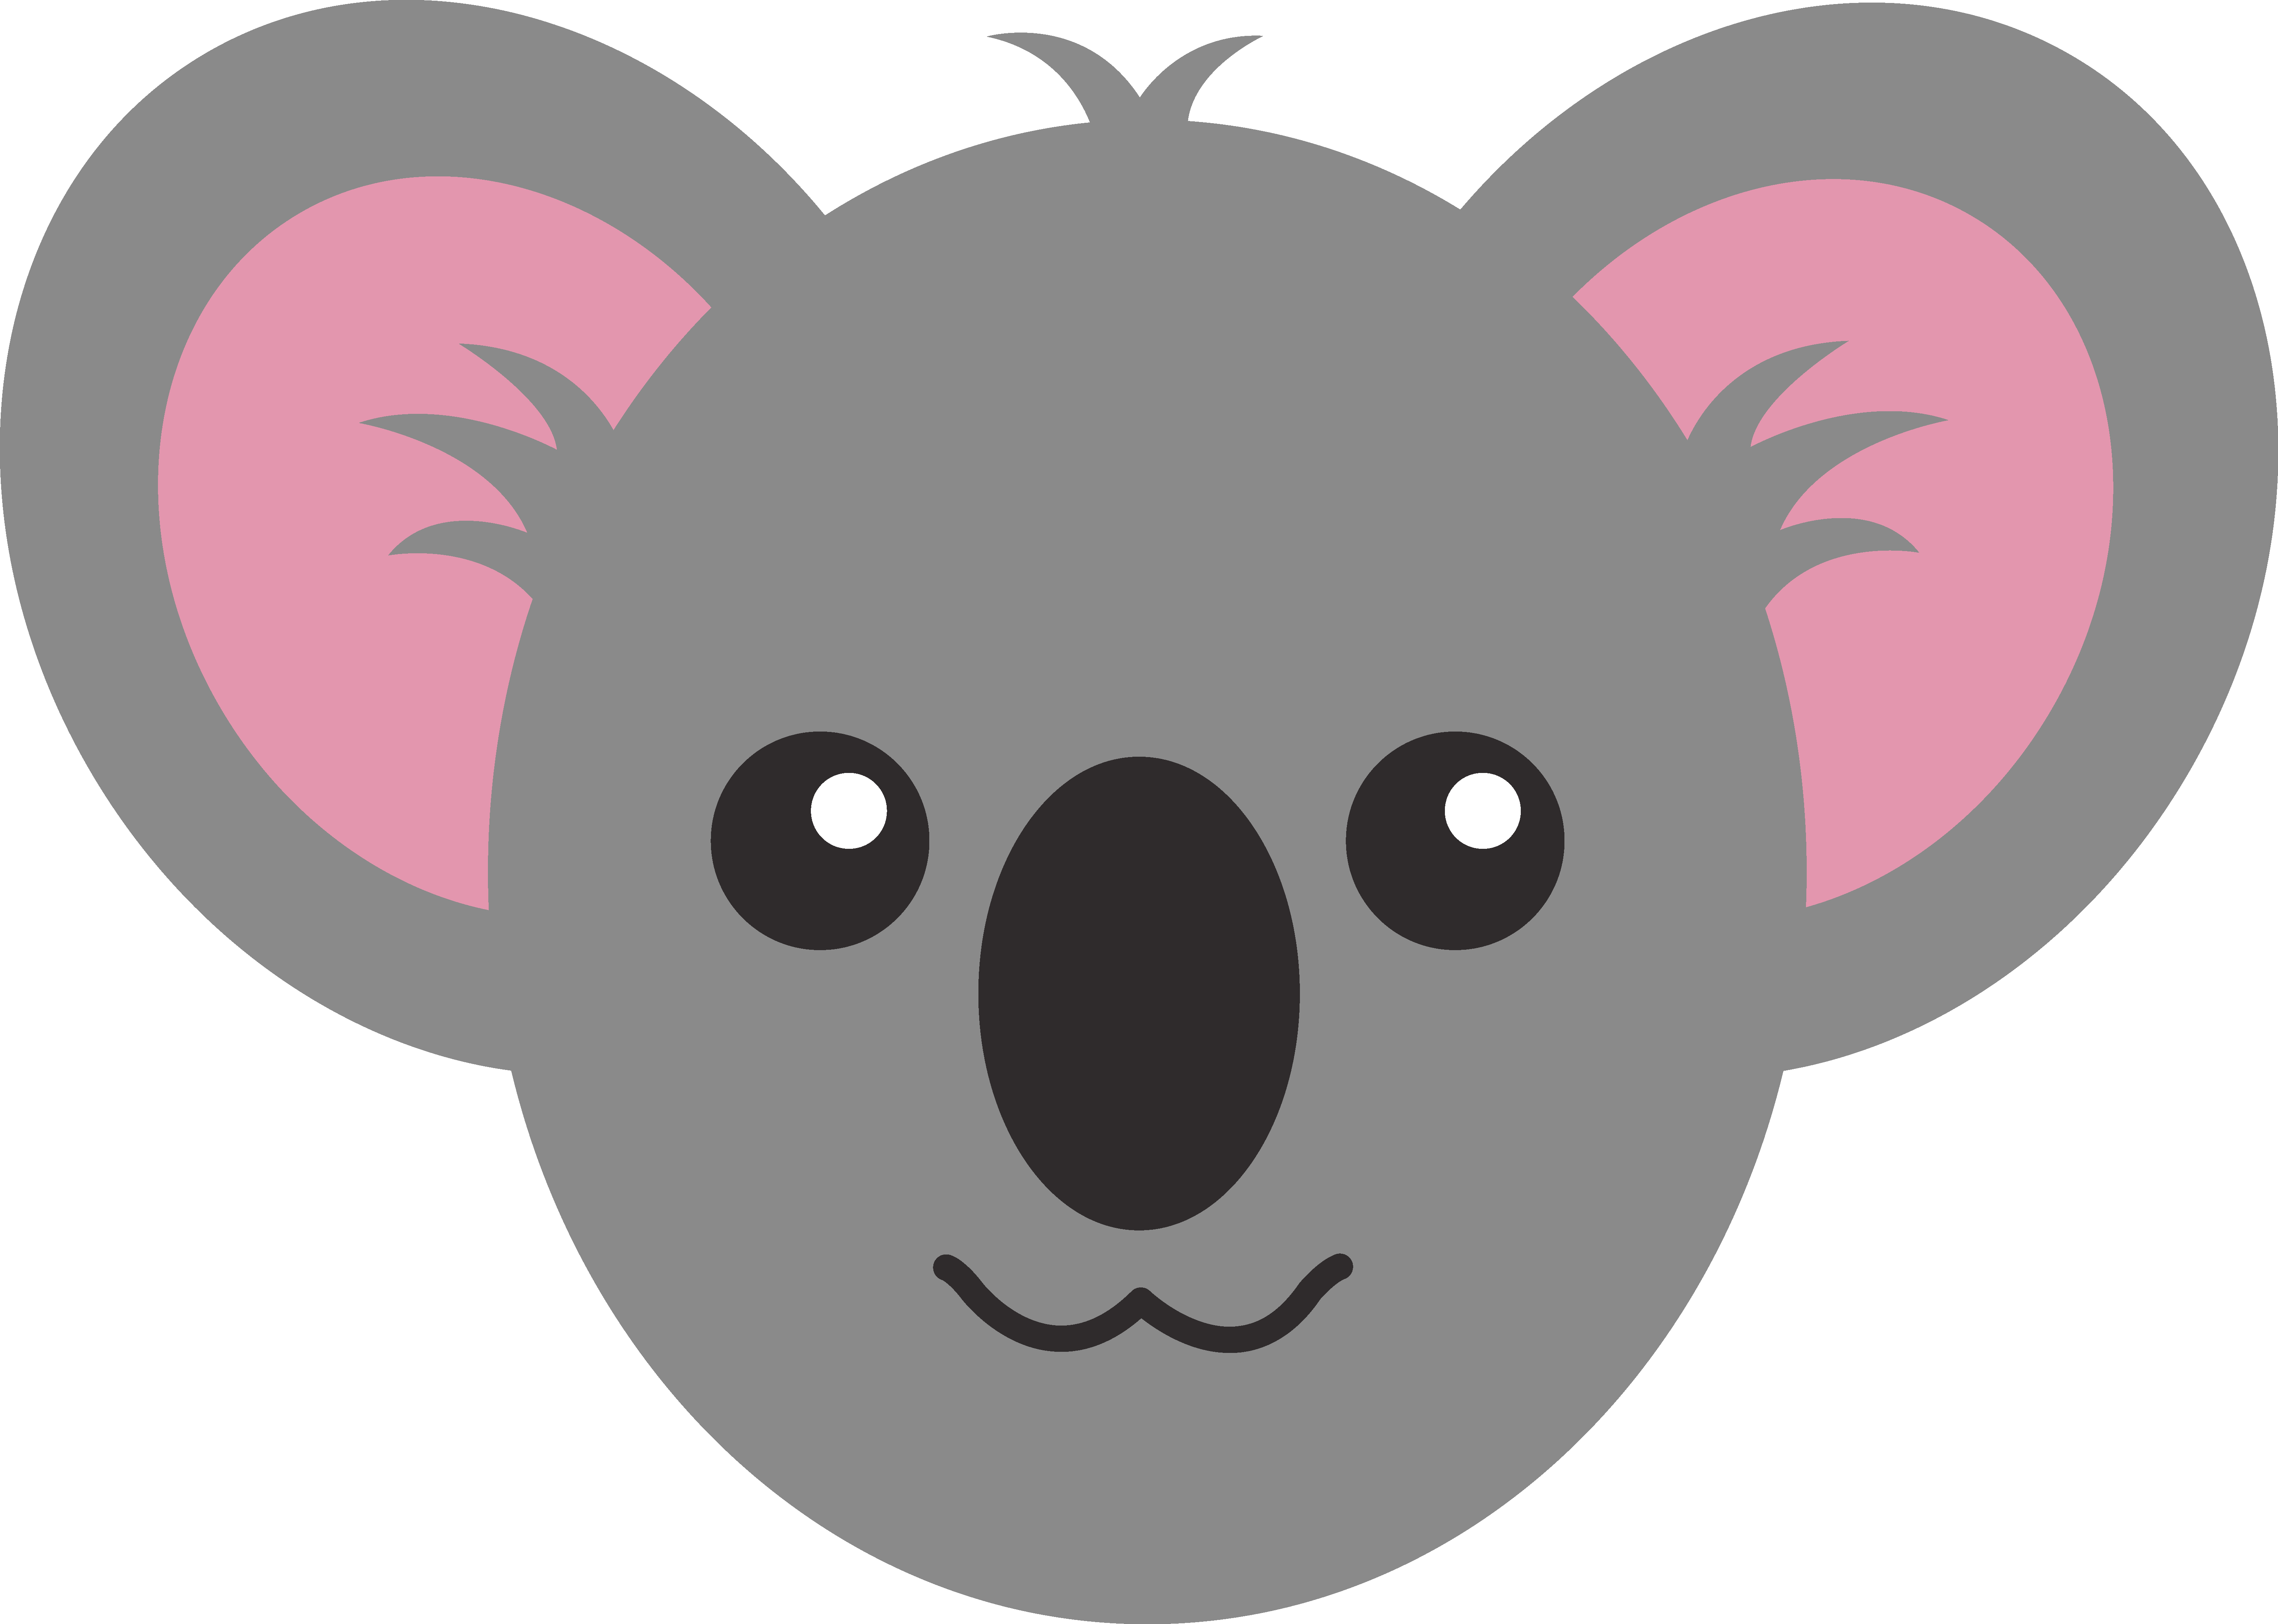 png freeuse library Bear face clipart. Koala